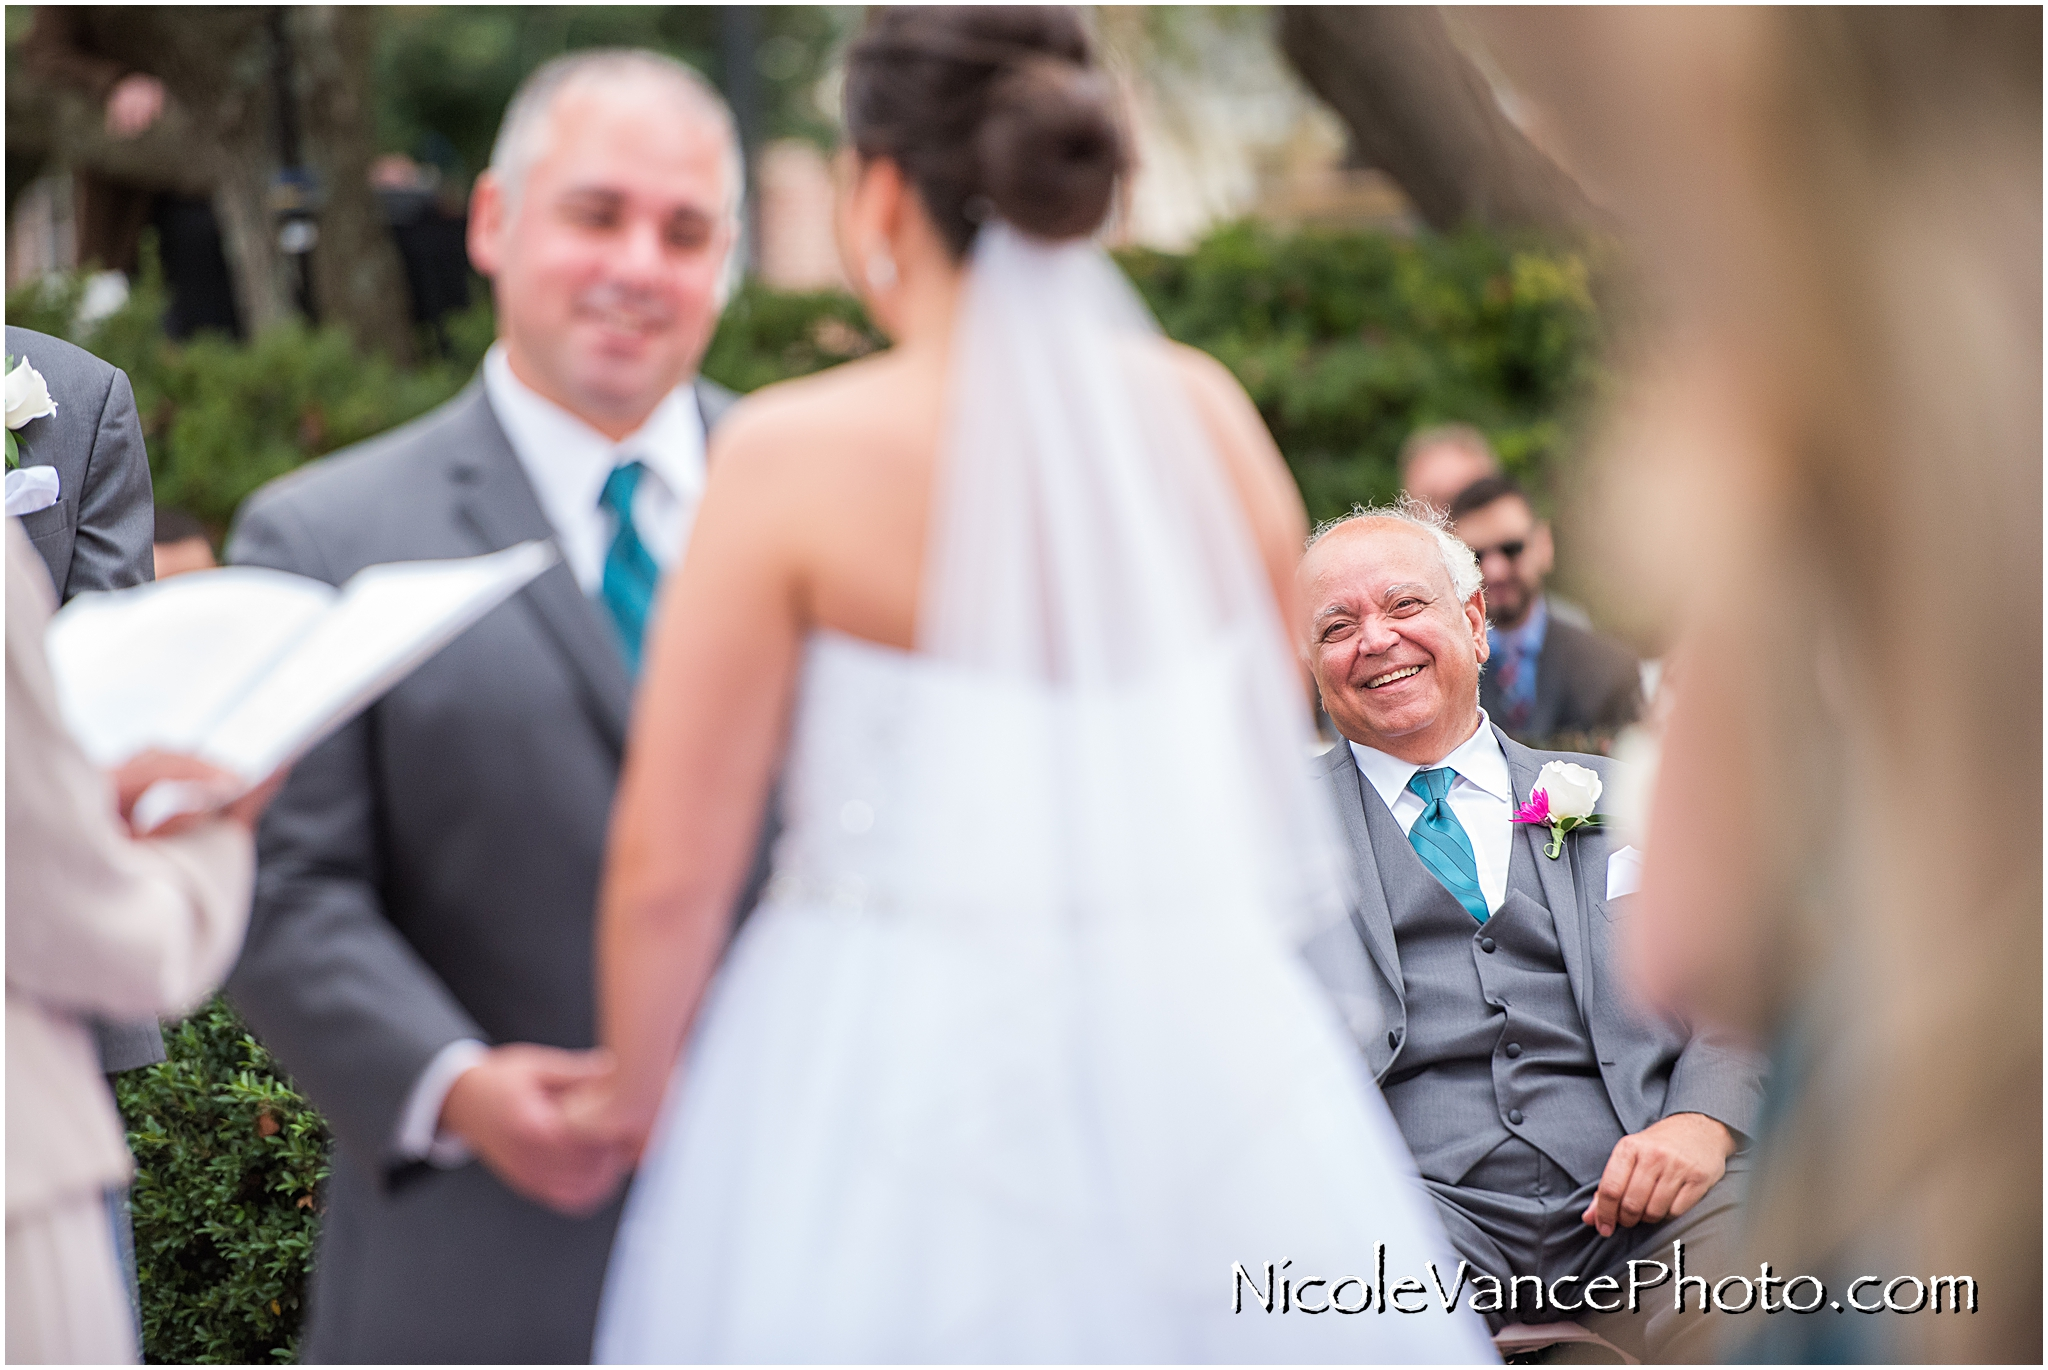 The groom's father during the wedding ceremony at Virginia Crossings.